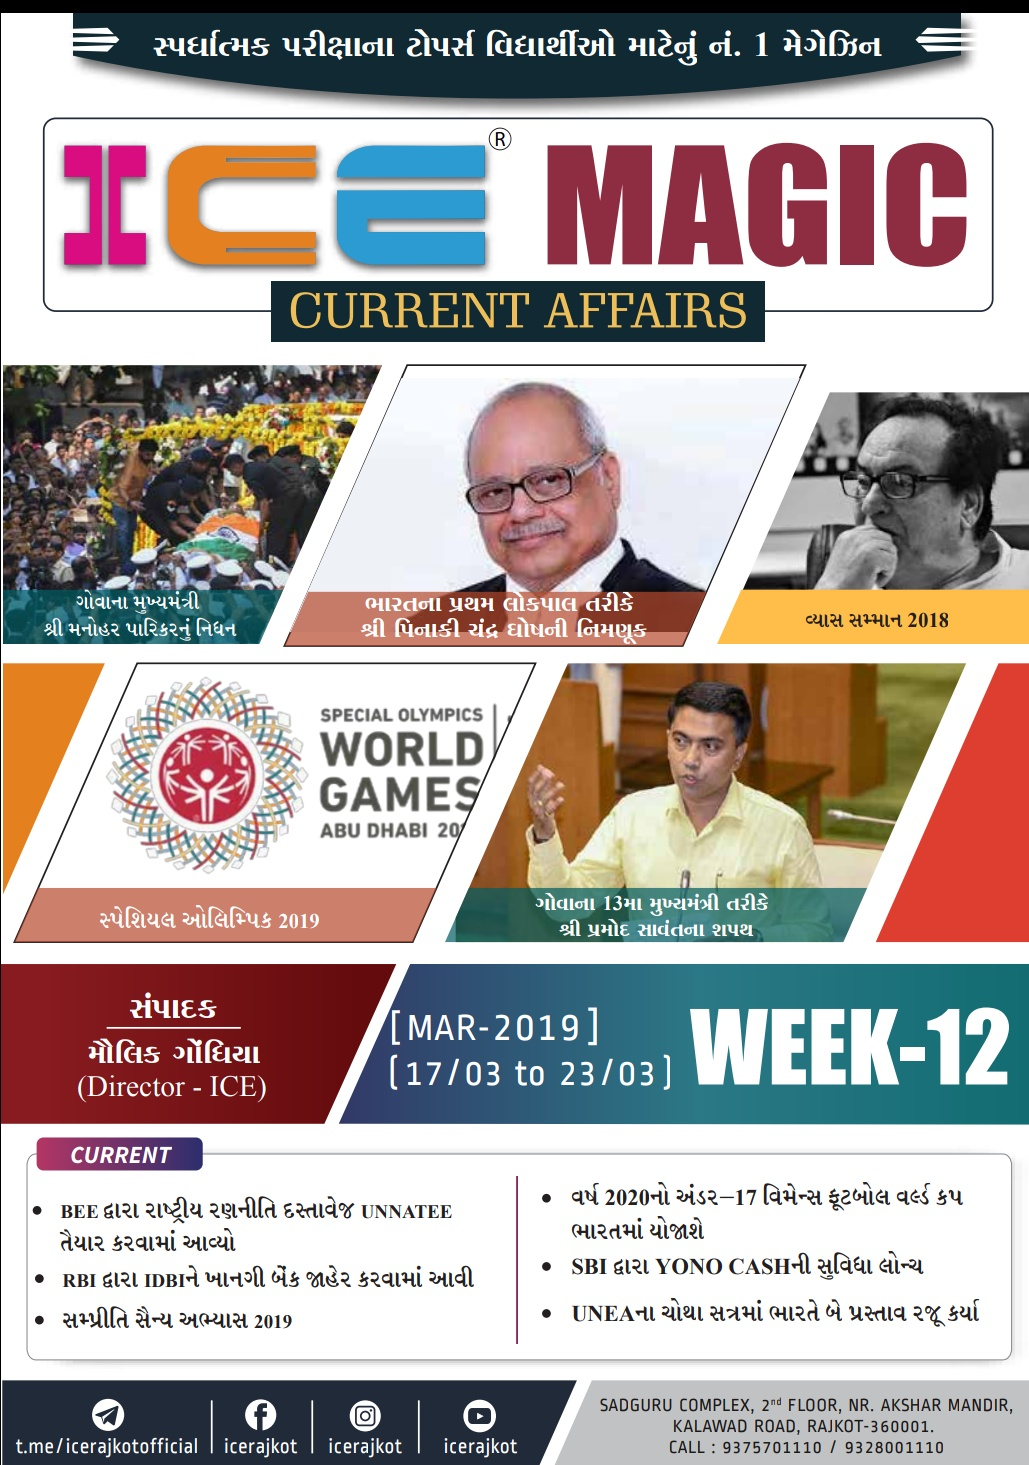 Current affairs 17 March To 23 March (week 12) by ice magic